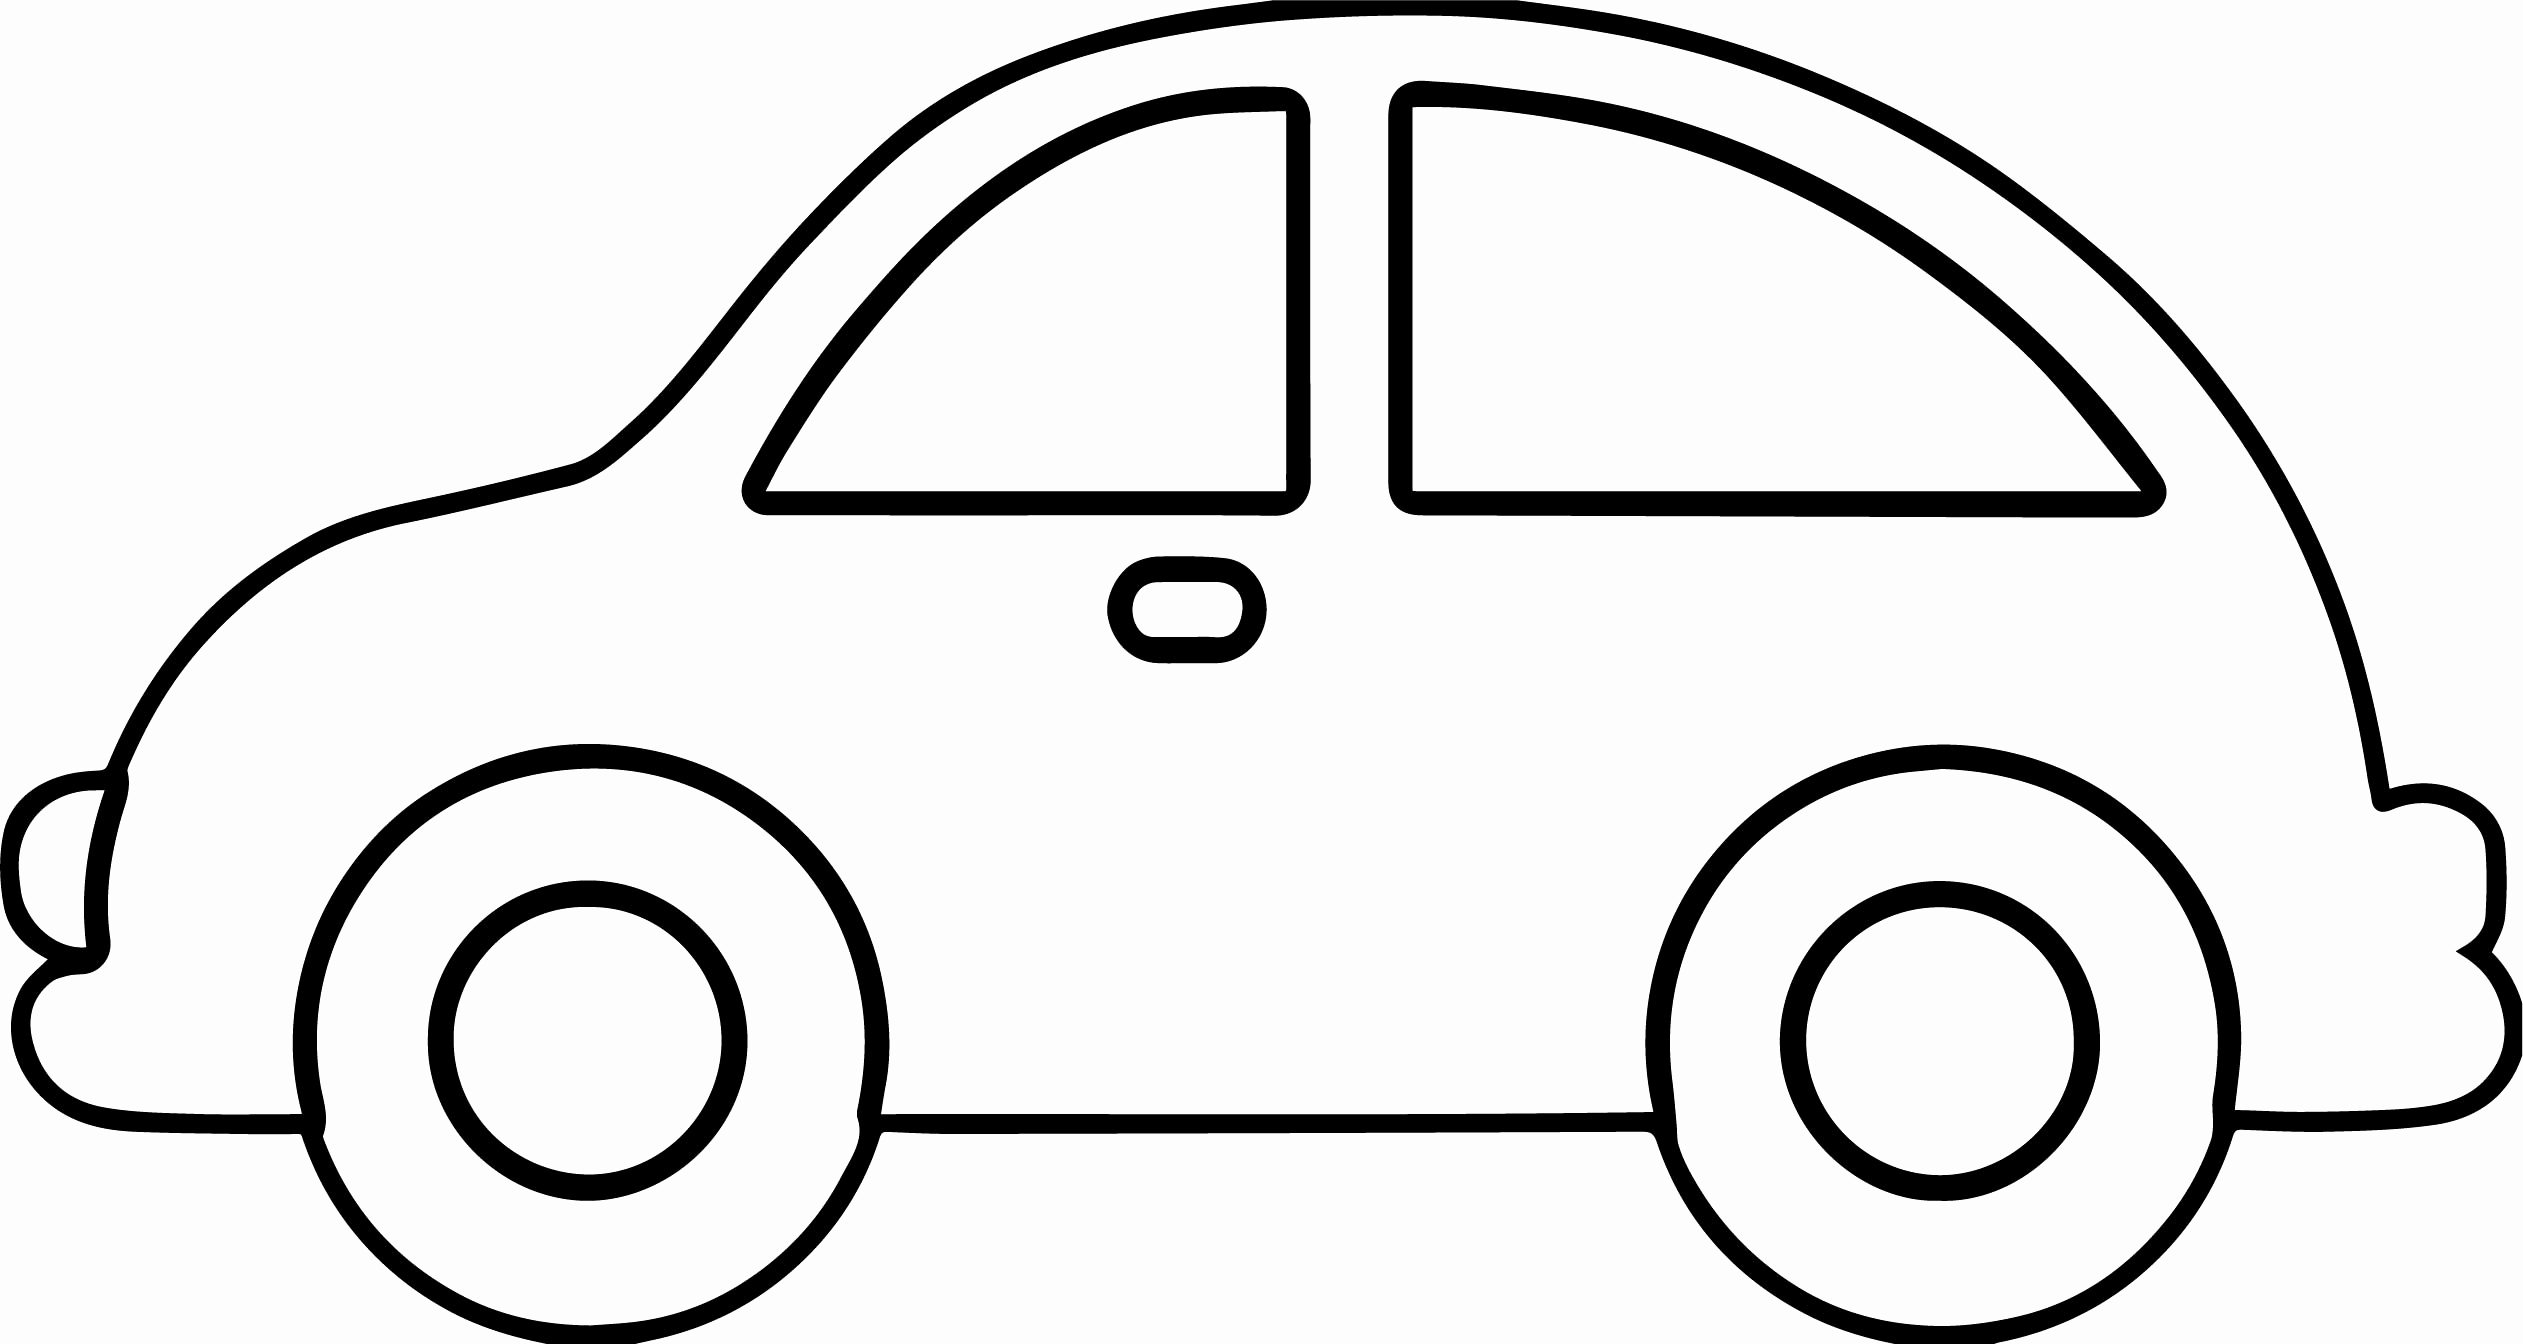 Cars clipart simple, Cars simple Transparent FREE for.